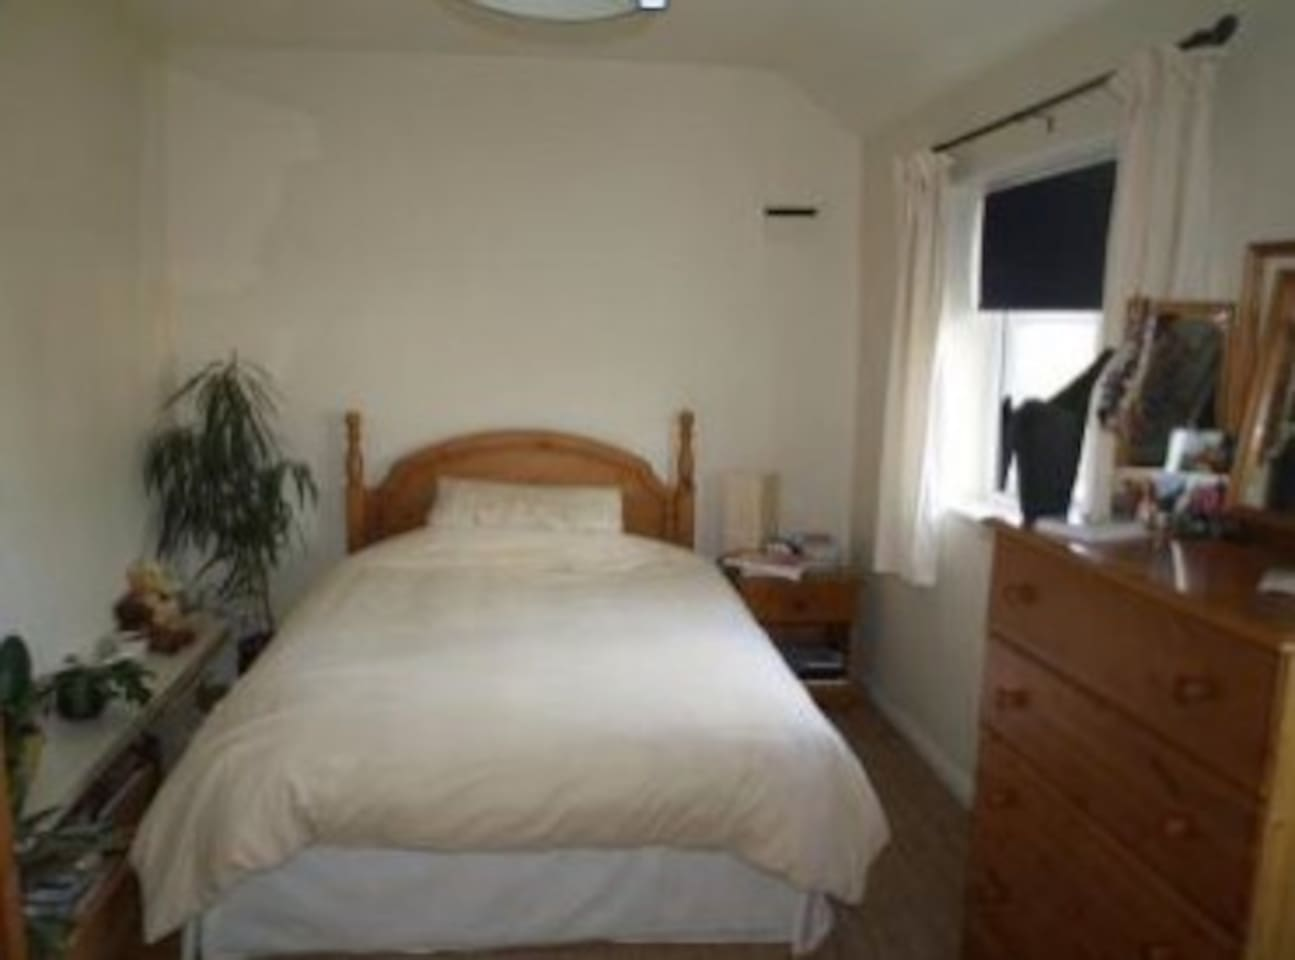 Bright, spacious double room with locker, chest of drawers, double wardrobe and armchair